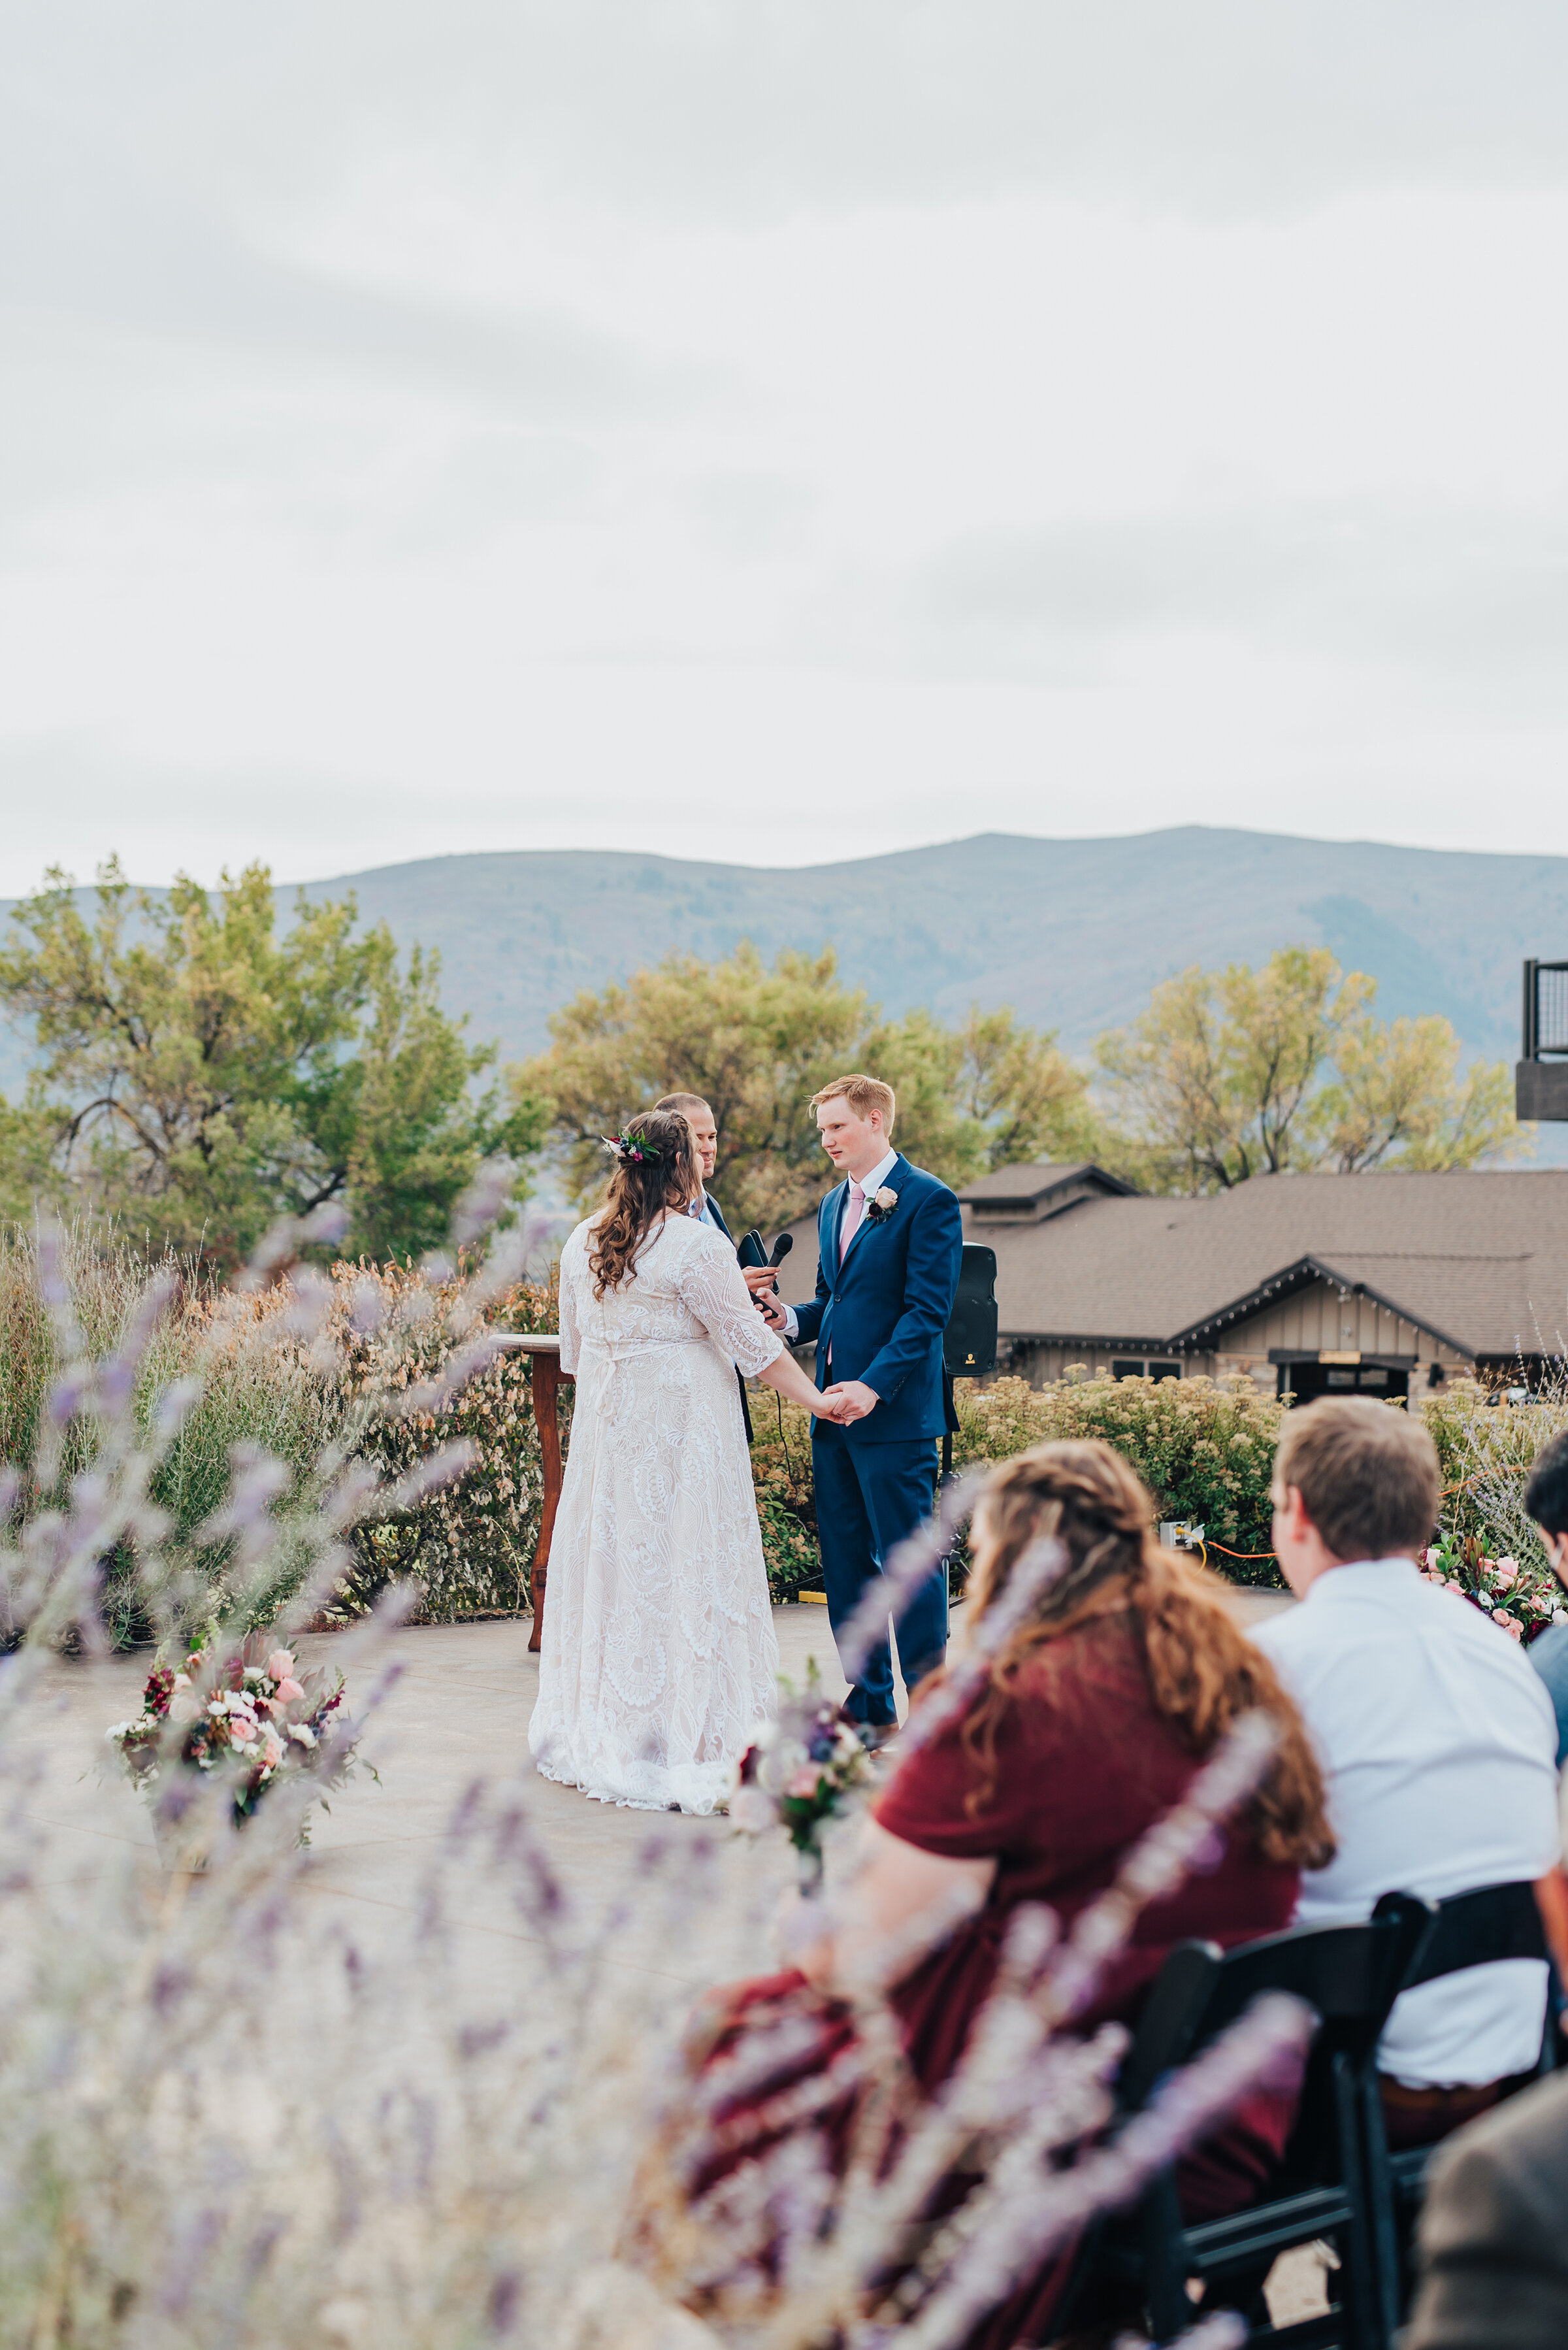 Bride and groom holding hands during their beautiful ceremony in northern Utah shot by Kristi Alyse Photography. Meaningful moment in wedding ceremony wedding day photography Utah bride logan Utah mountain background adventure love story I do photograph inspo #weddinginspo #loganutah #brideandgroom #utahbride #utahweddingphotographer #meaningfulmoment #weddingphotography #northernutahwedding #weddinghairstyles #weddingday #bridals